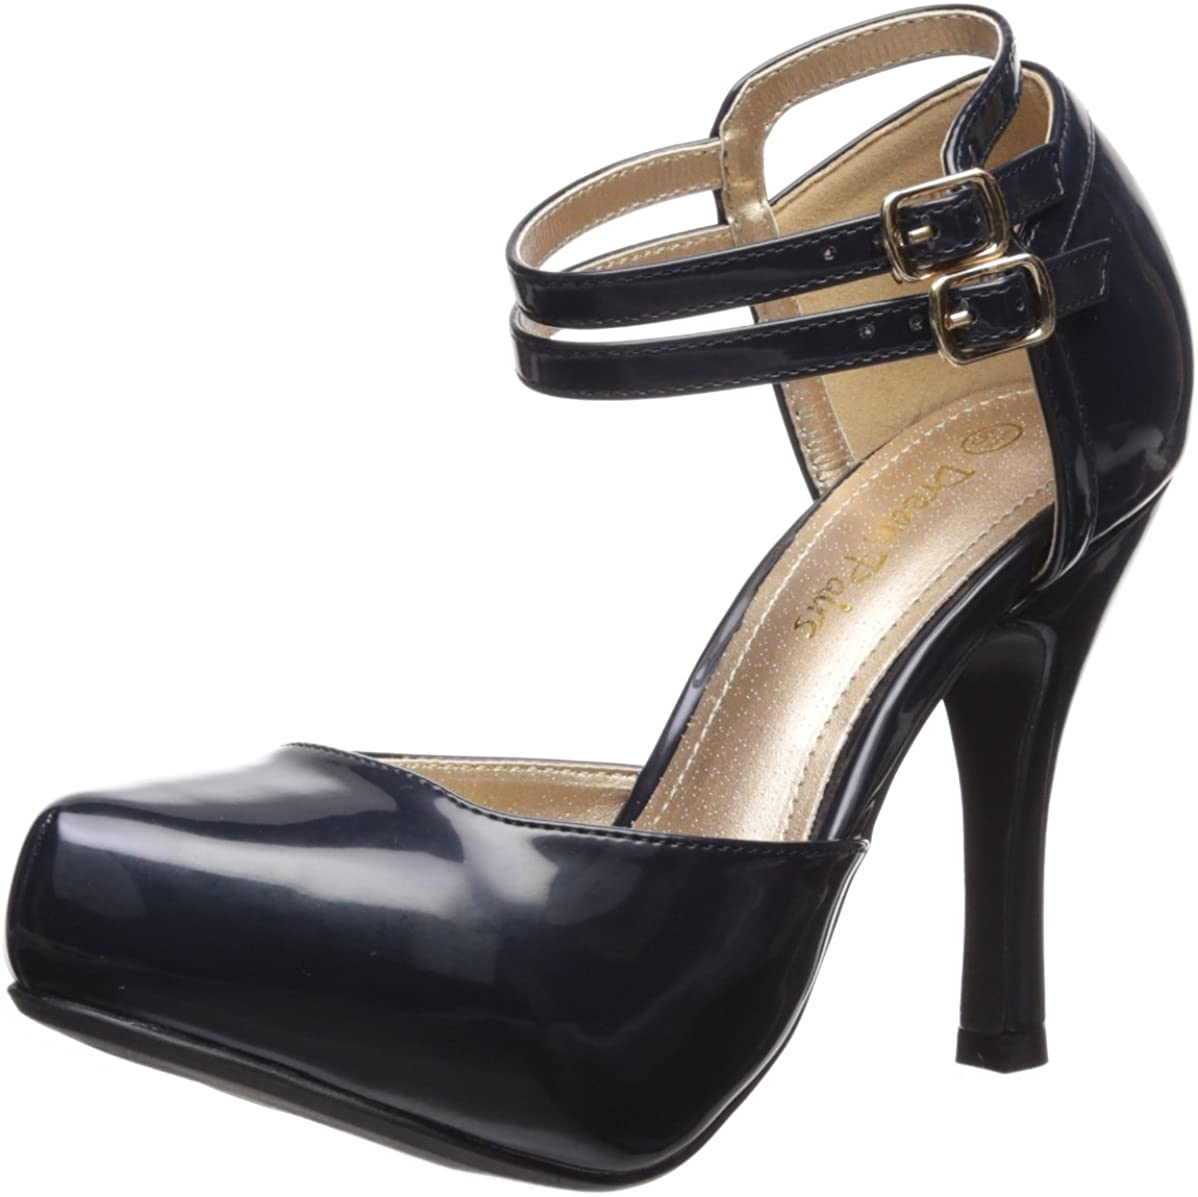 DREAM PAIRS Office-02 Women's Classy Mary Jane Double Ankle Strap Almond Toe High Heel Pumps New